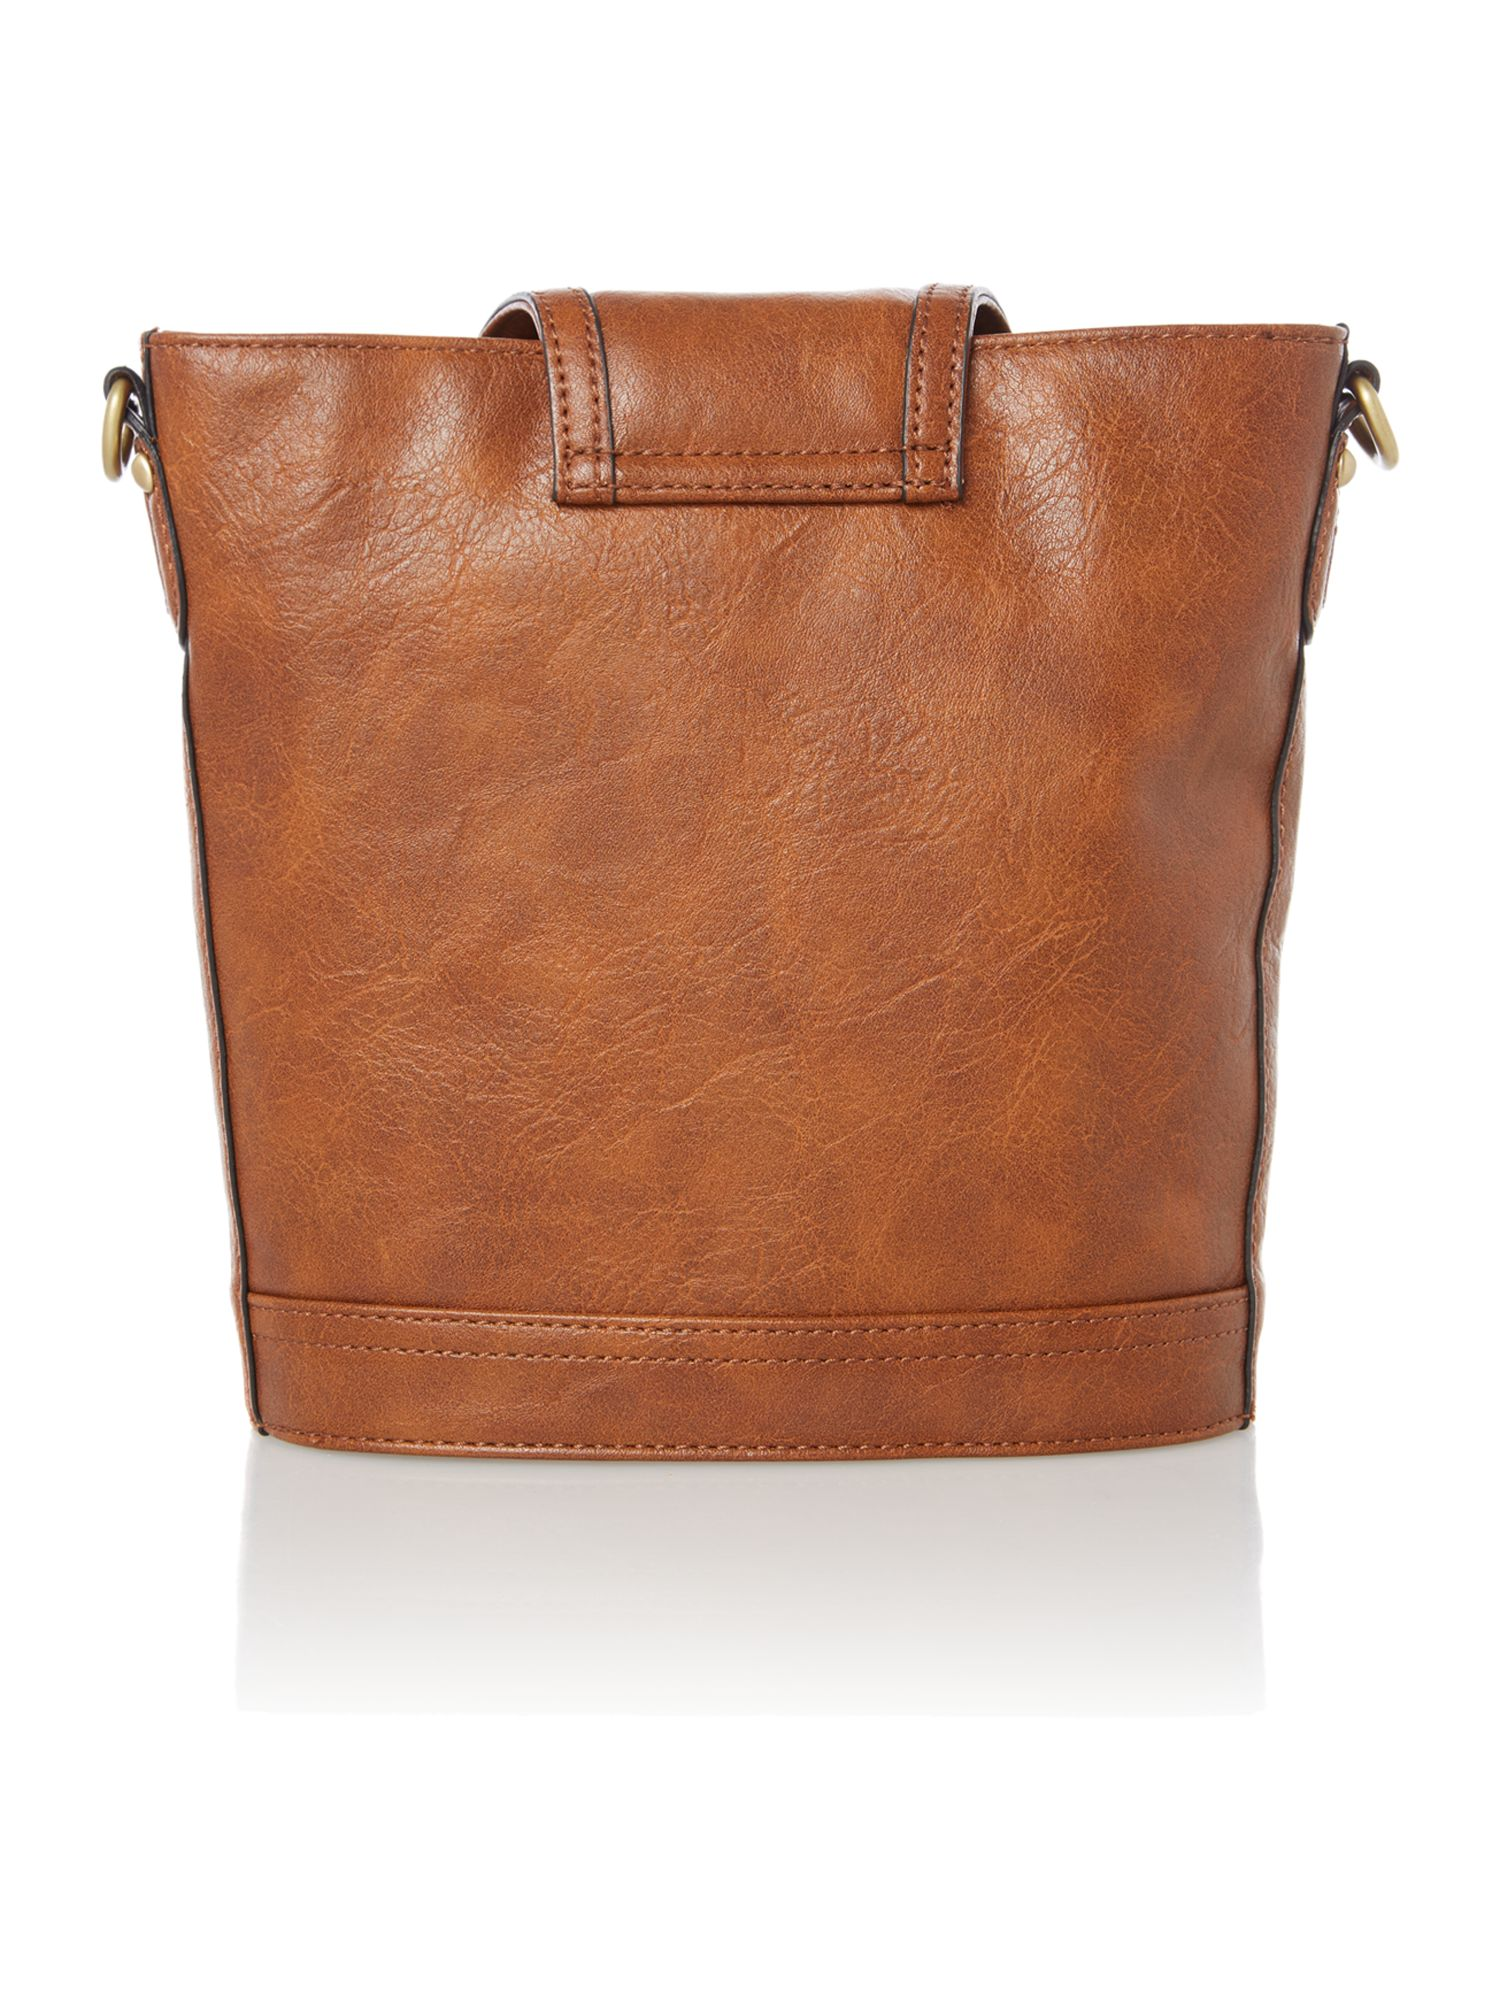 Corinne tan crossbody bag